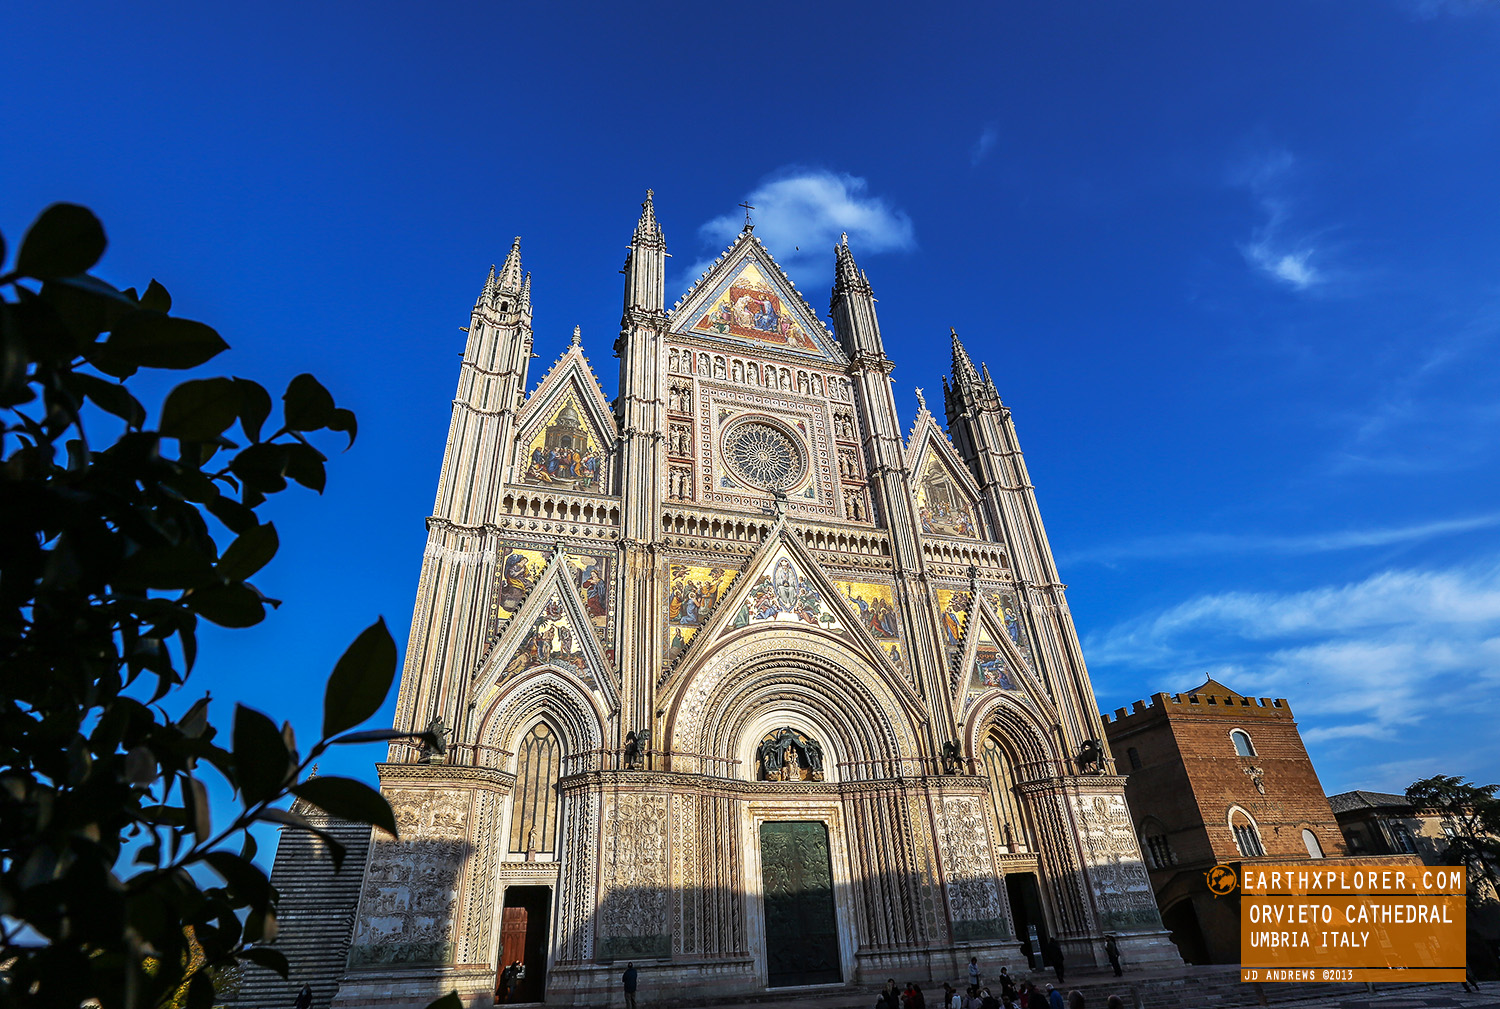 The Gothic facade of the Cathedral is considered one of the great masterpieces of the Late Middle Ages.